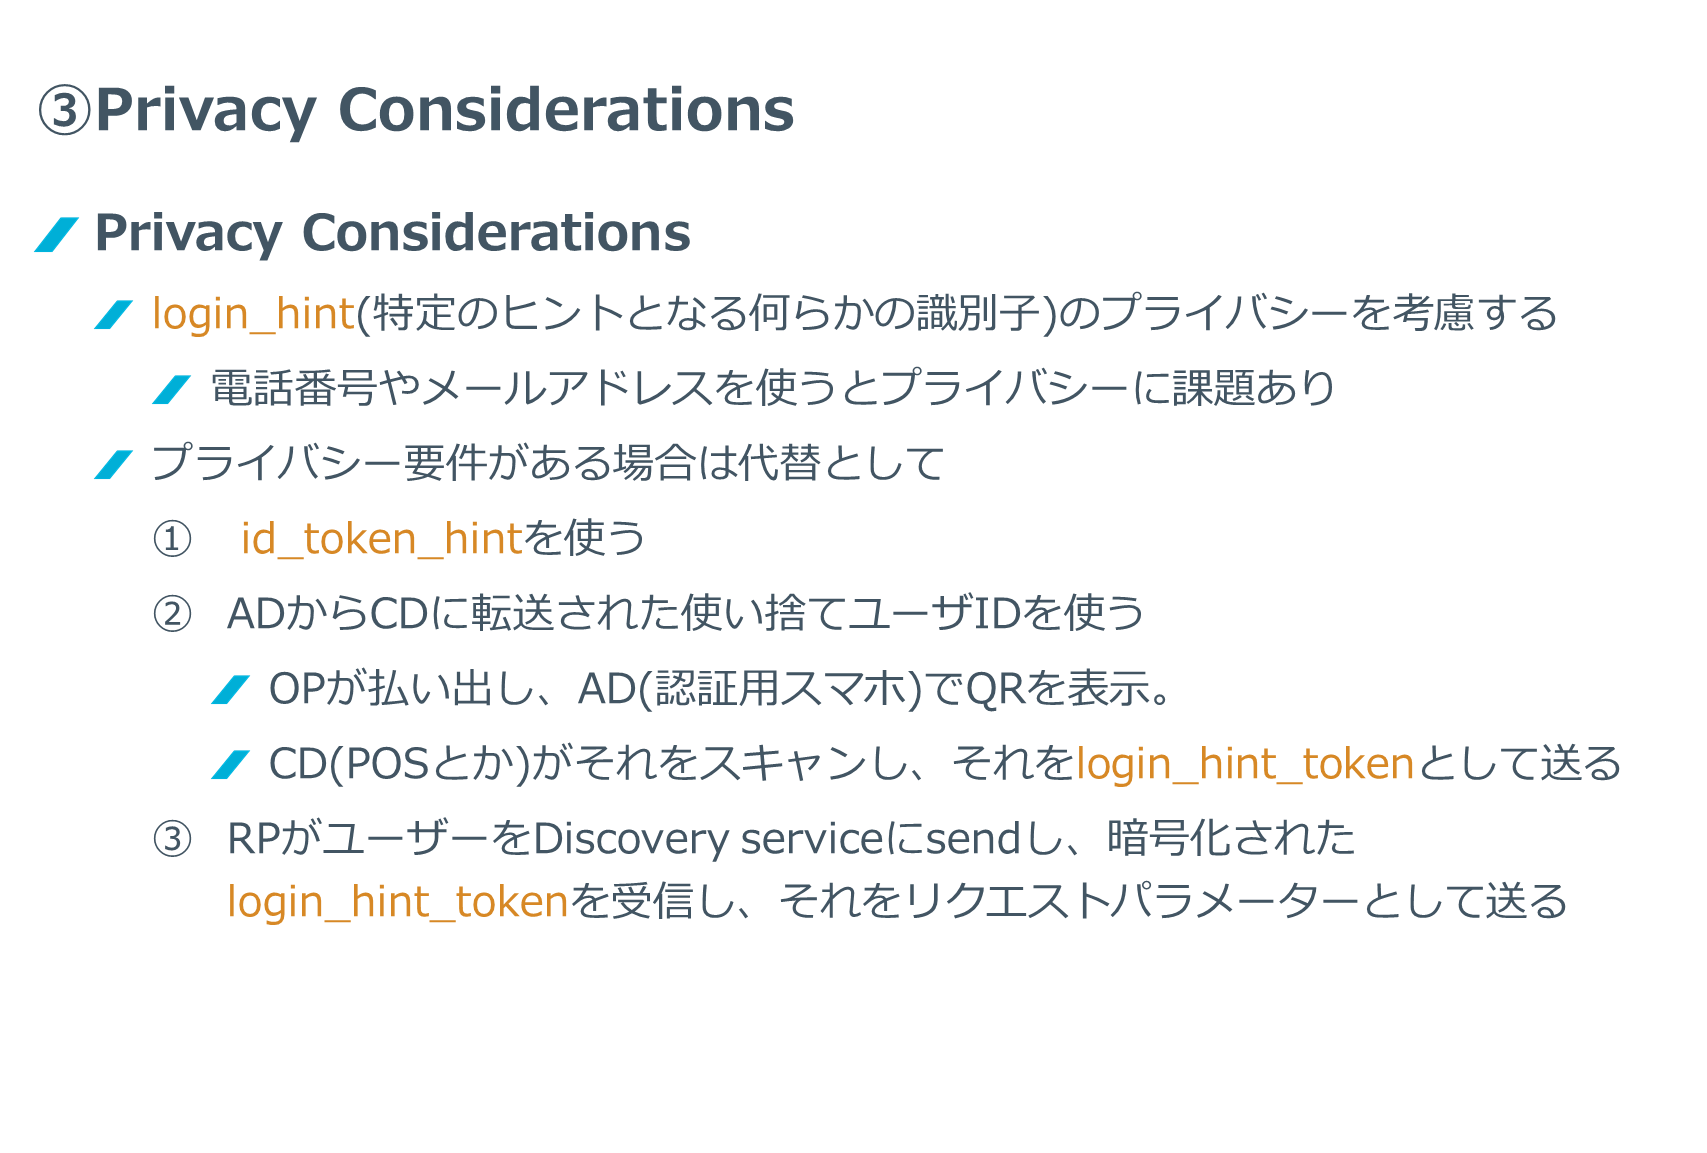 SecureSketCH_PrivacyConsiderations